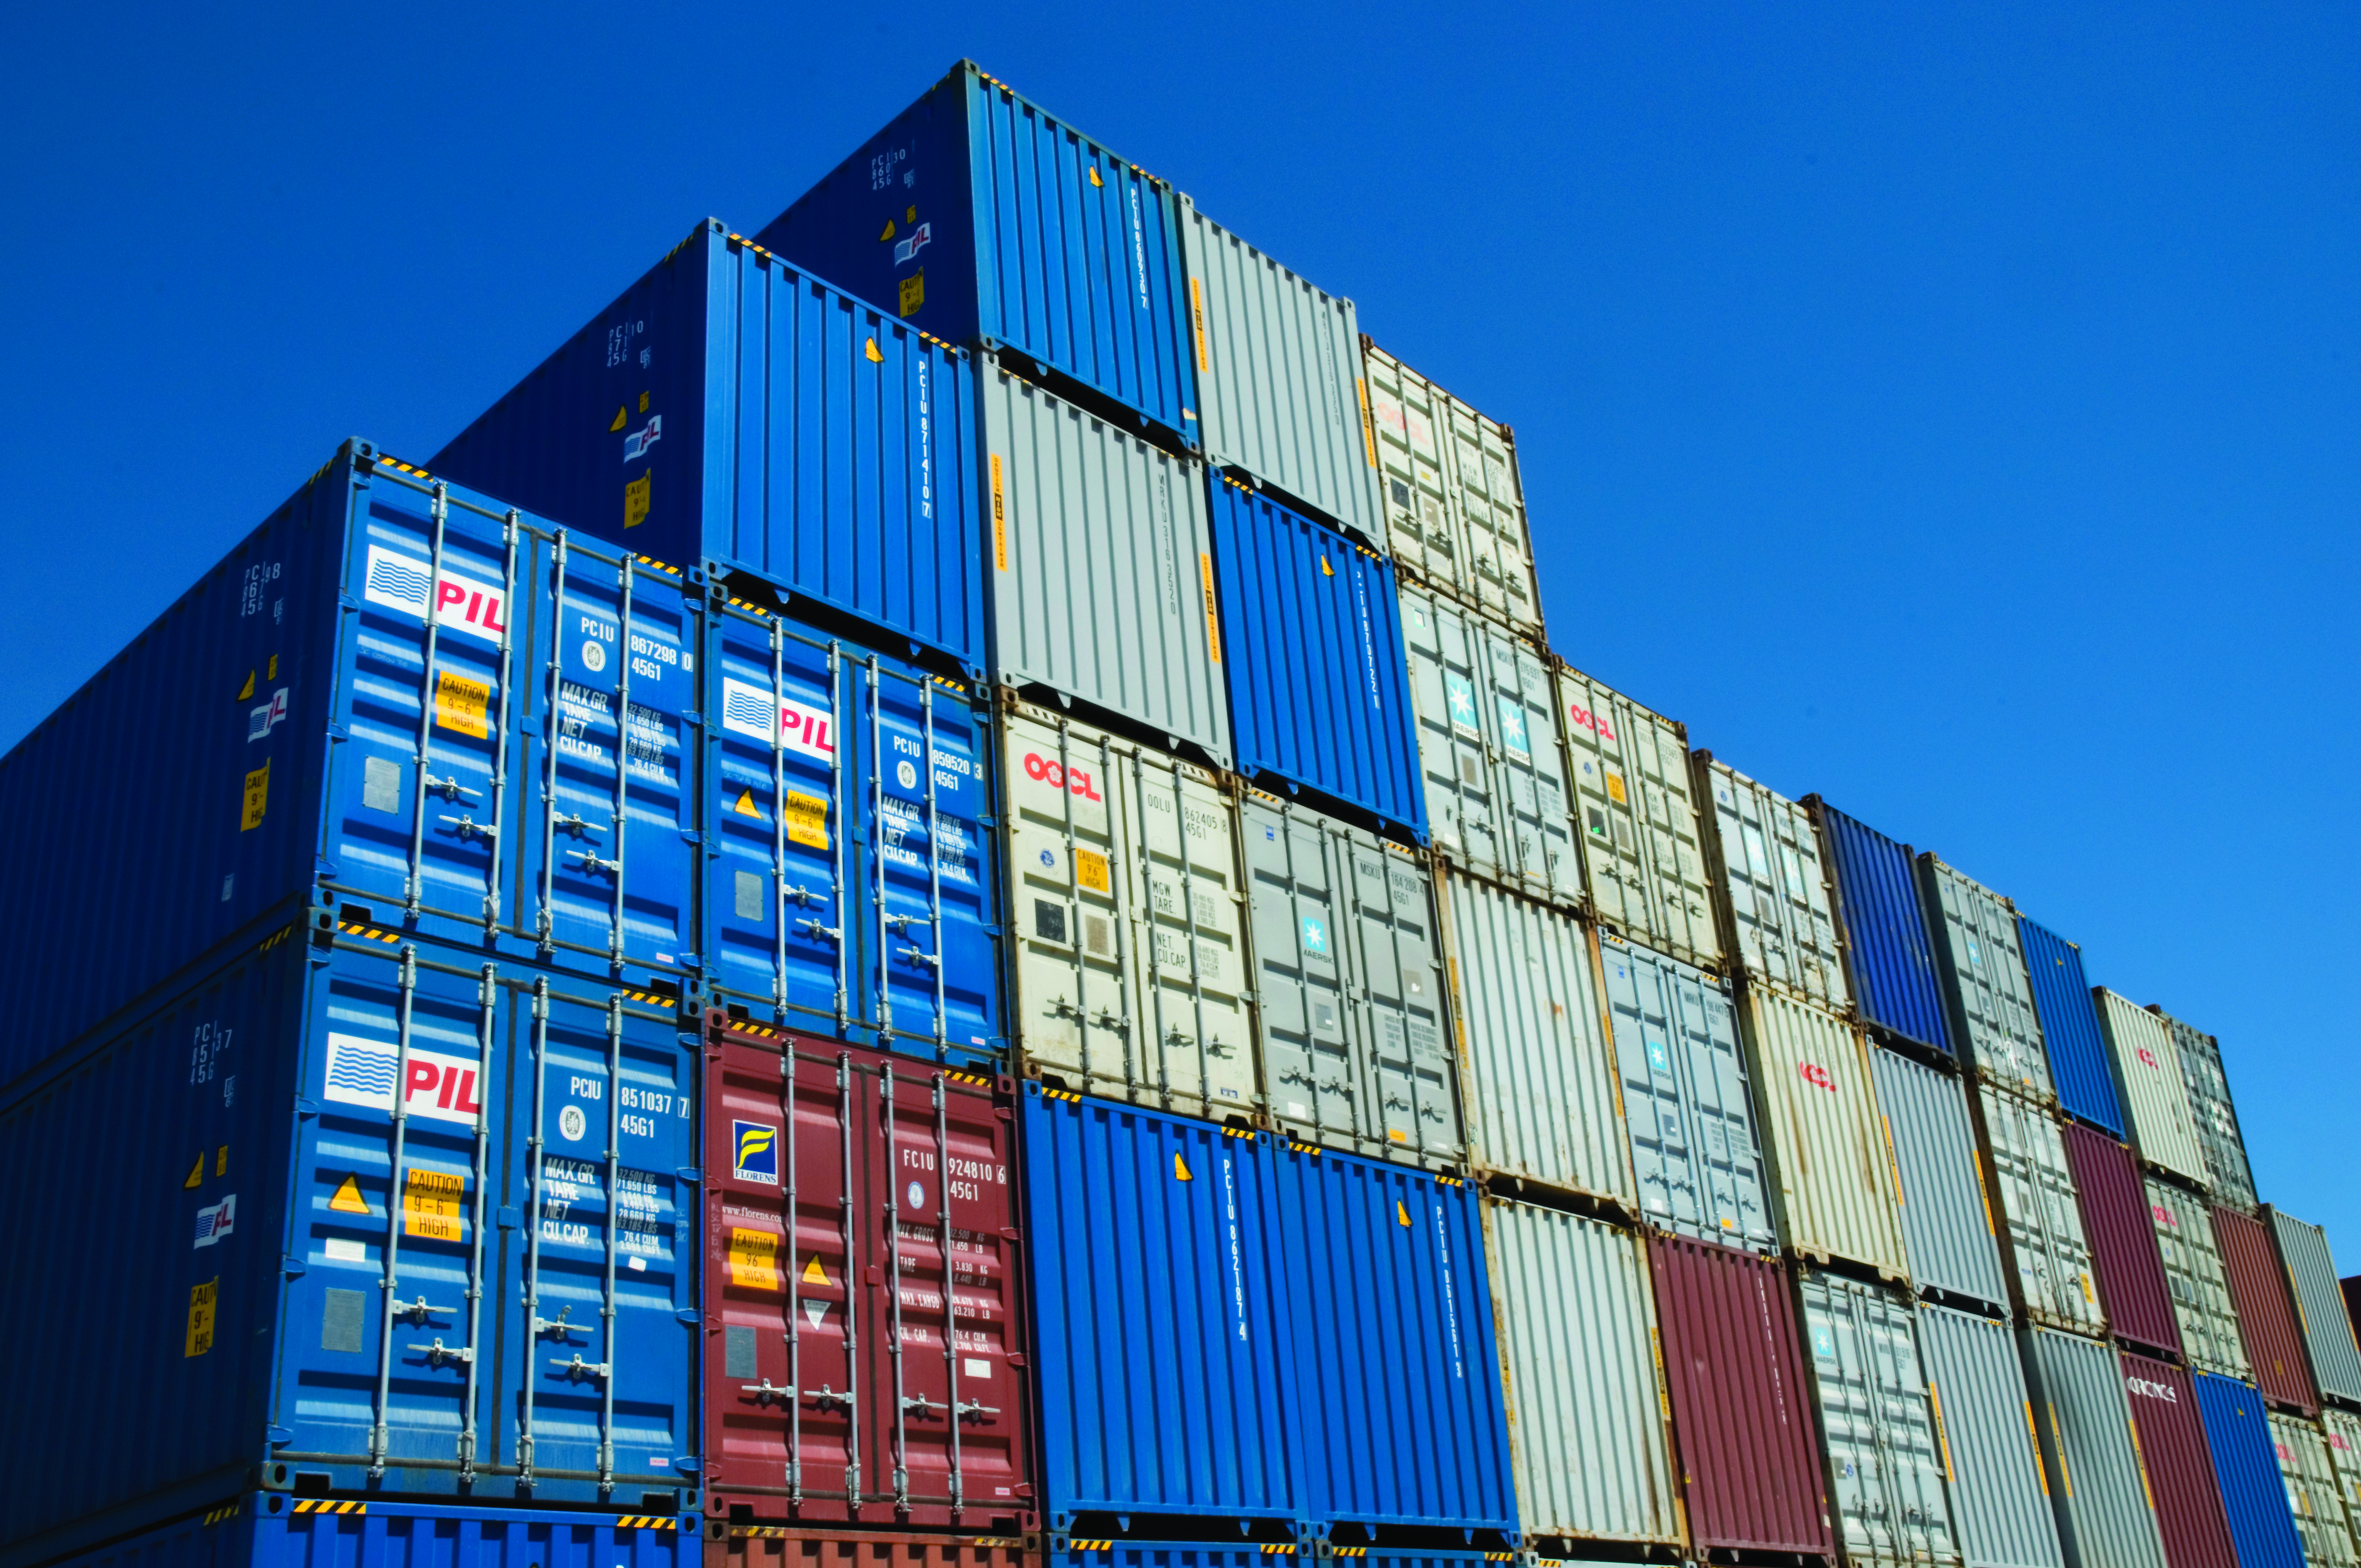 3.1 fpa containers 1 stack of containers fav l or containers 3